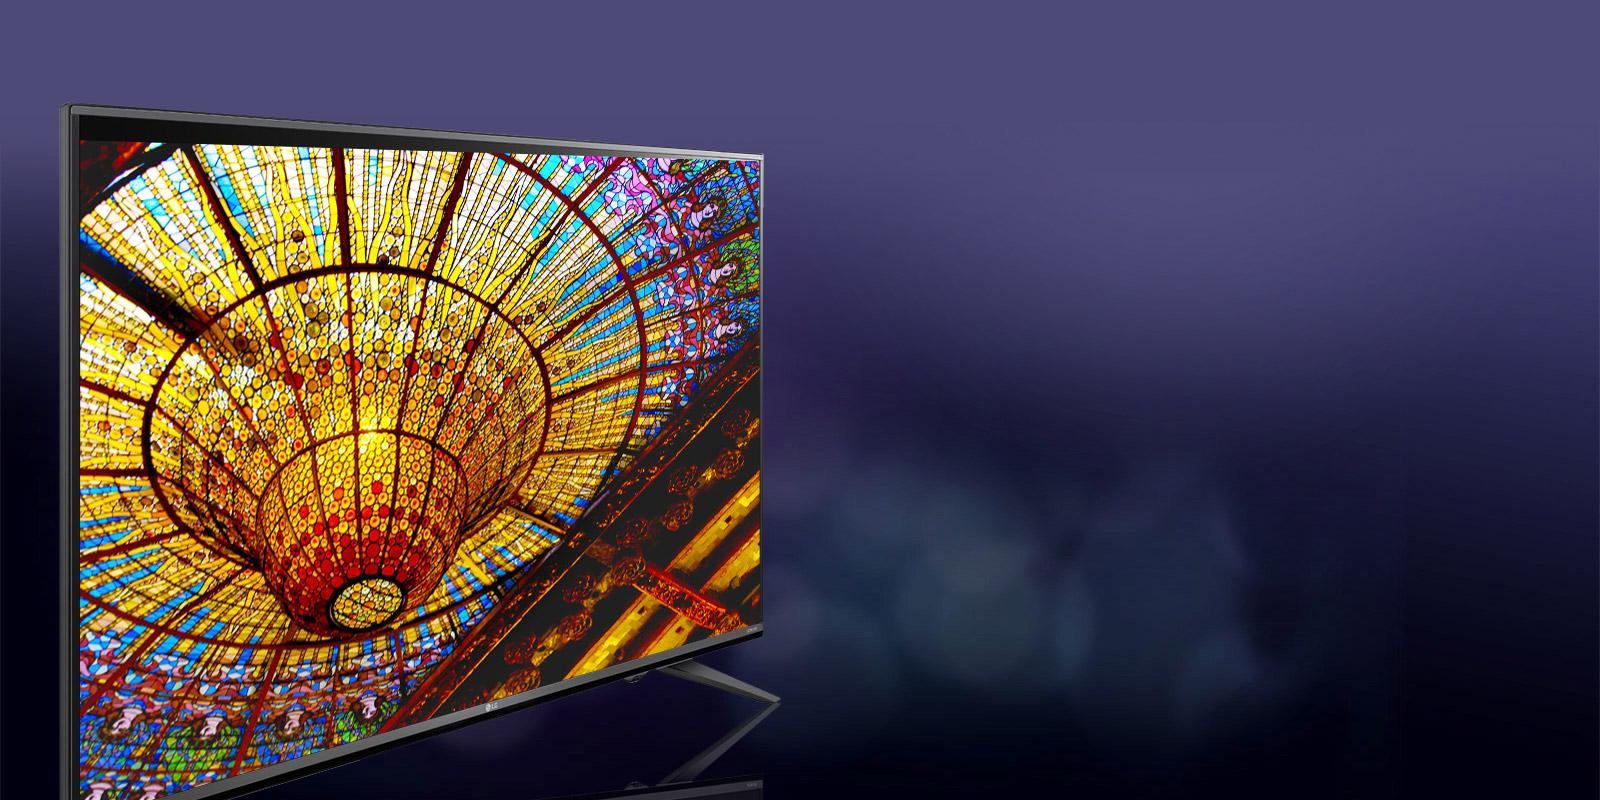 LG TV with the image of a stained glass ceiling on the screen.